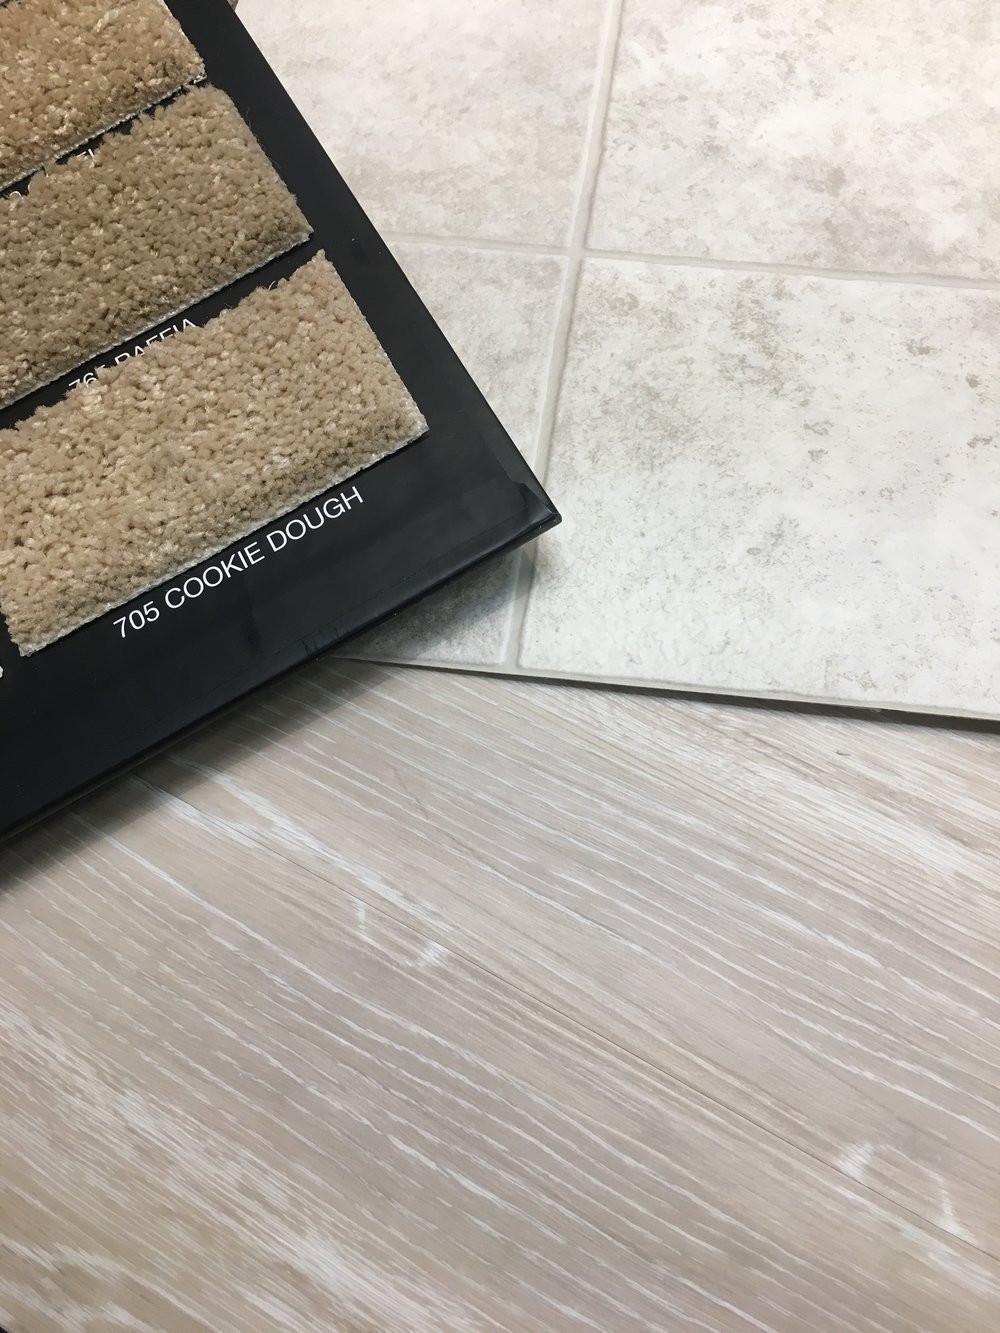 hardwood flooring distributors near me of carpet vacuum expo for selling a property heres our top tips for getting it ready to show